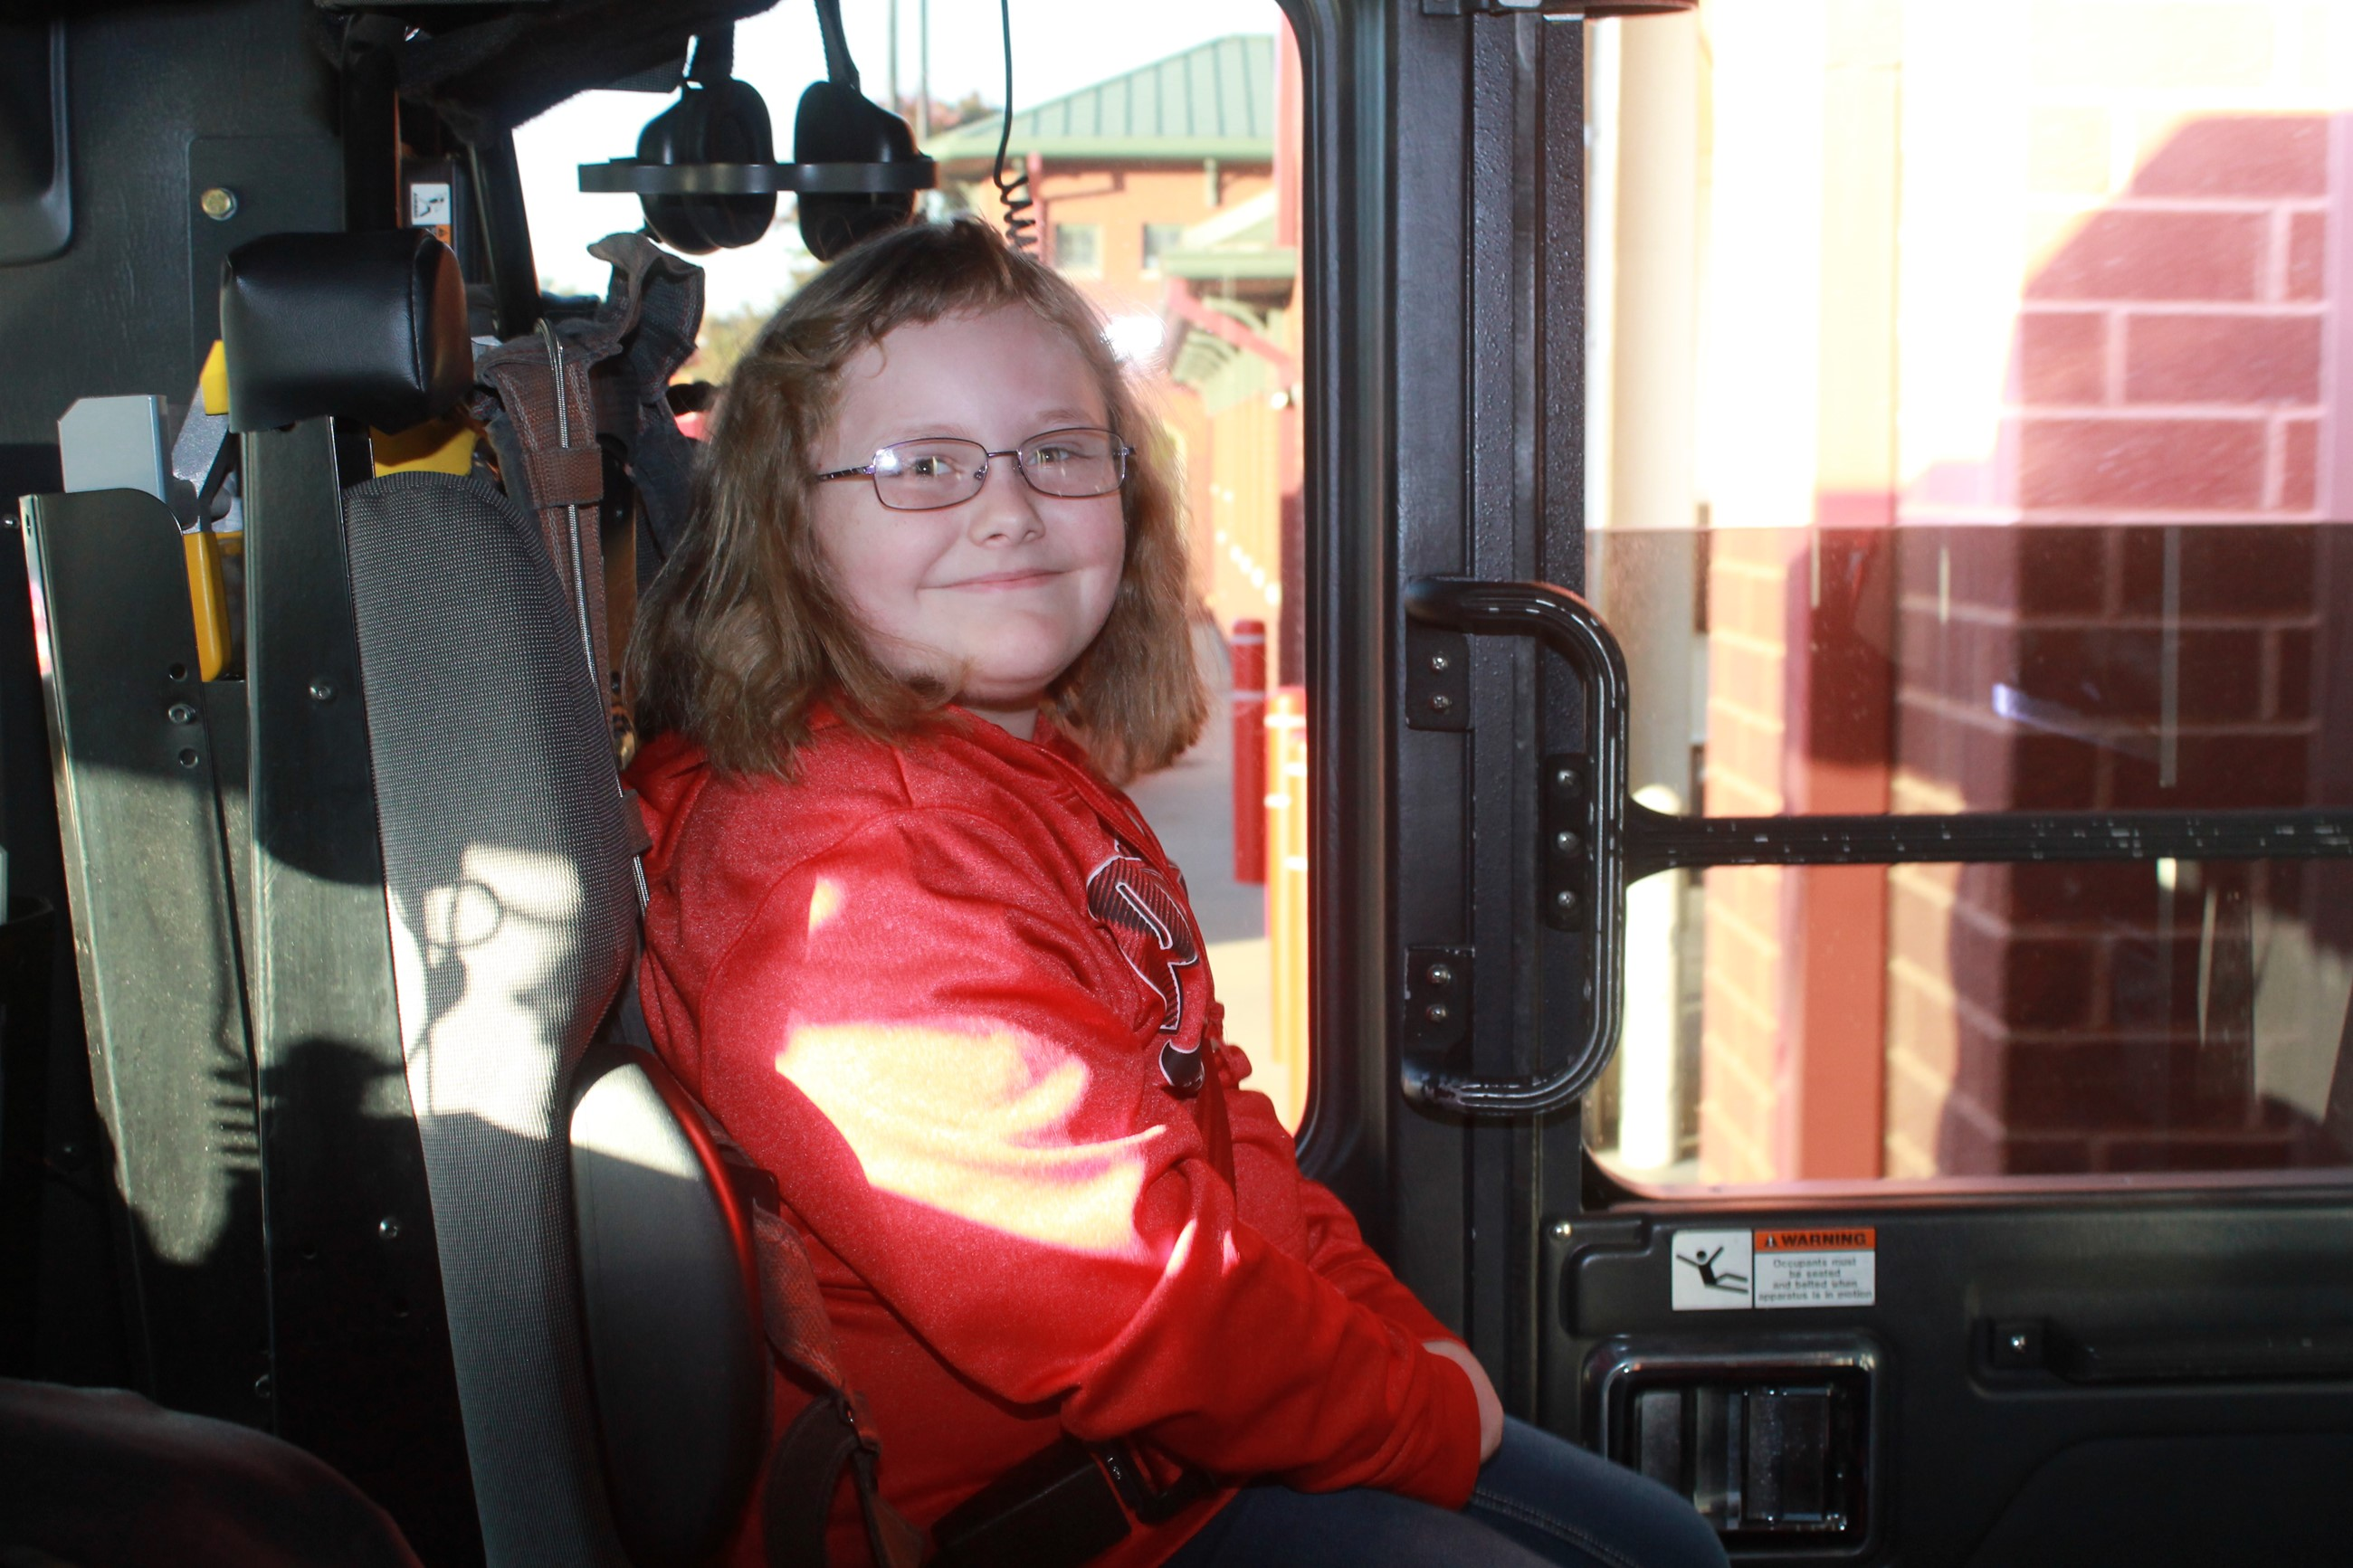 A Ride in the Fire Truck